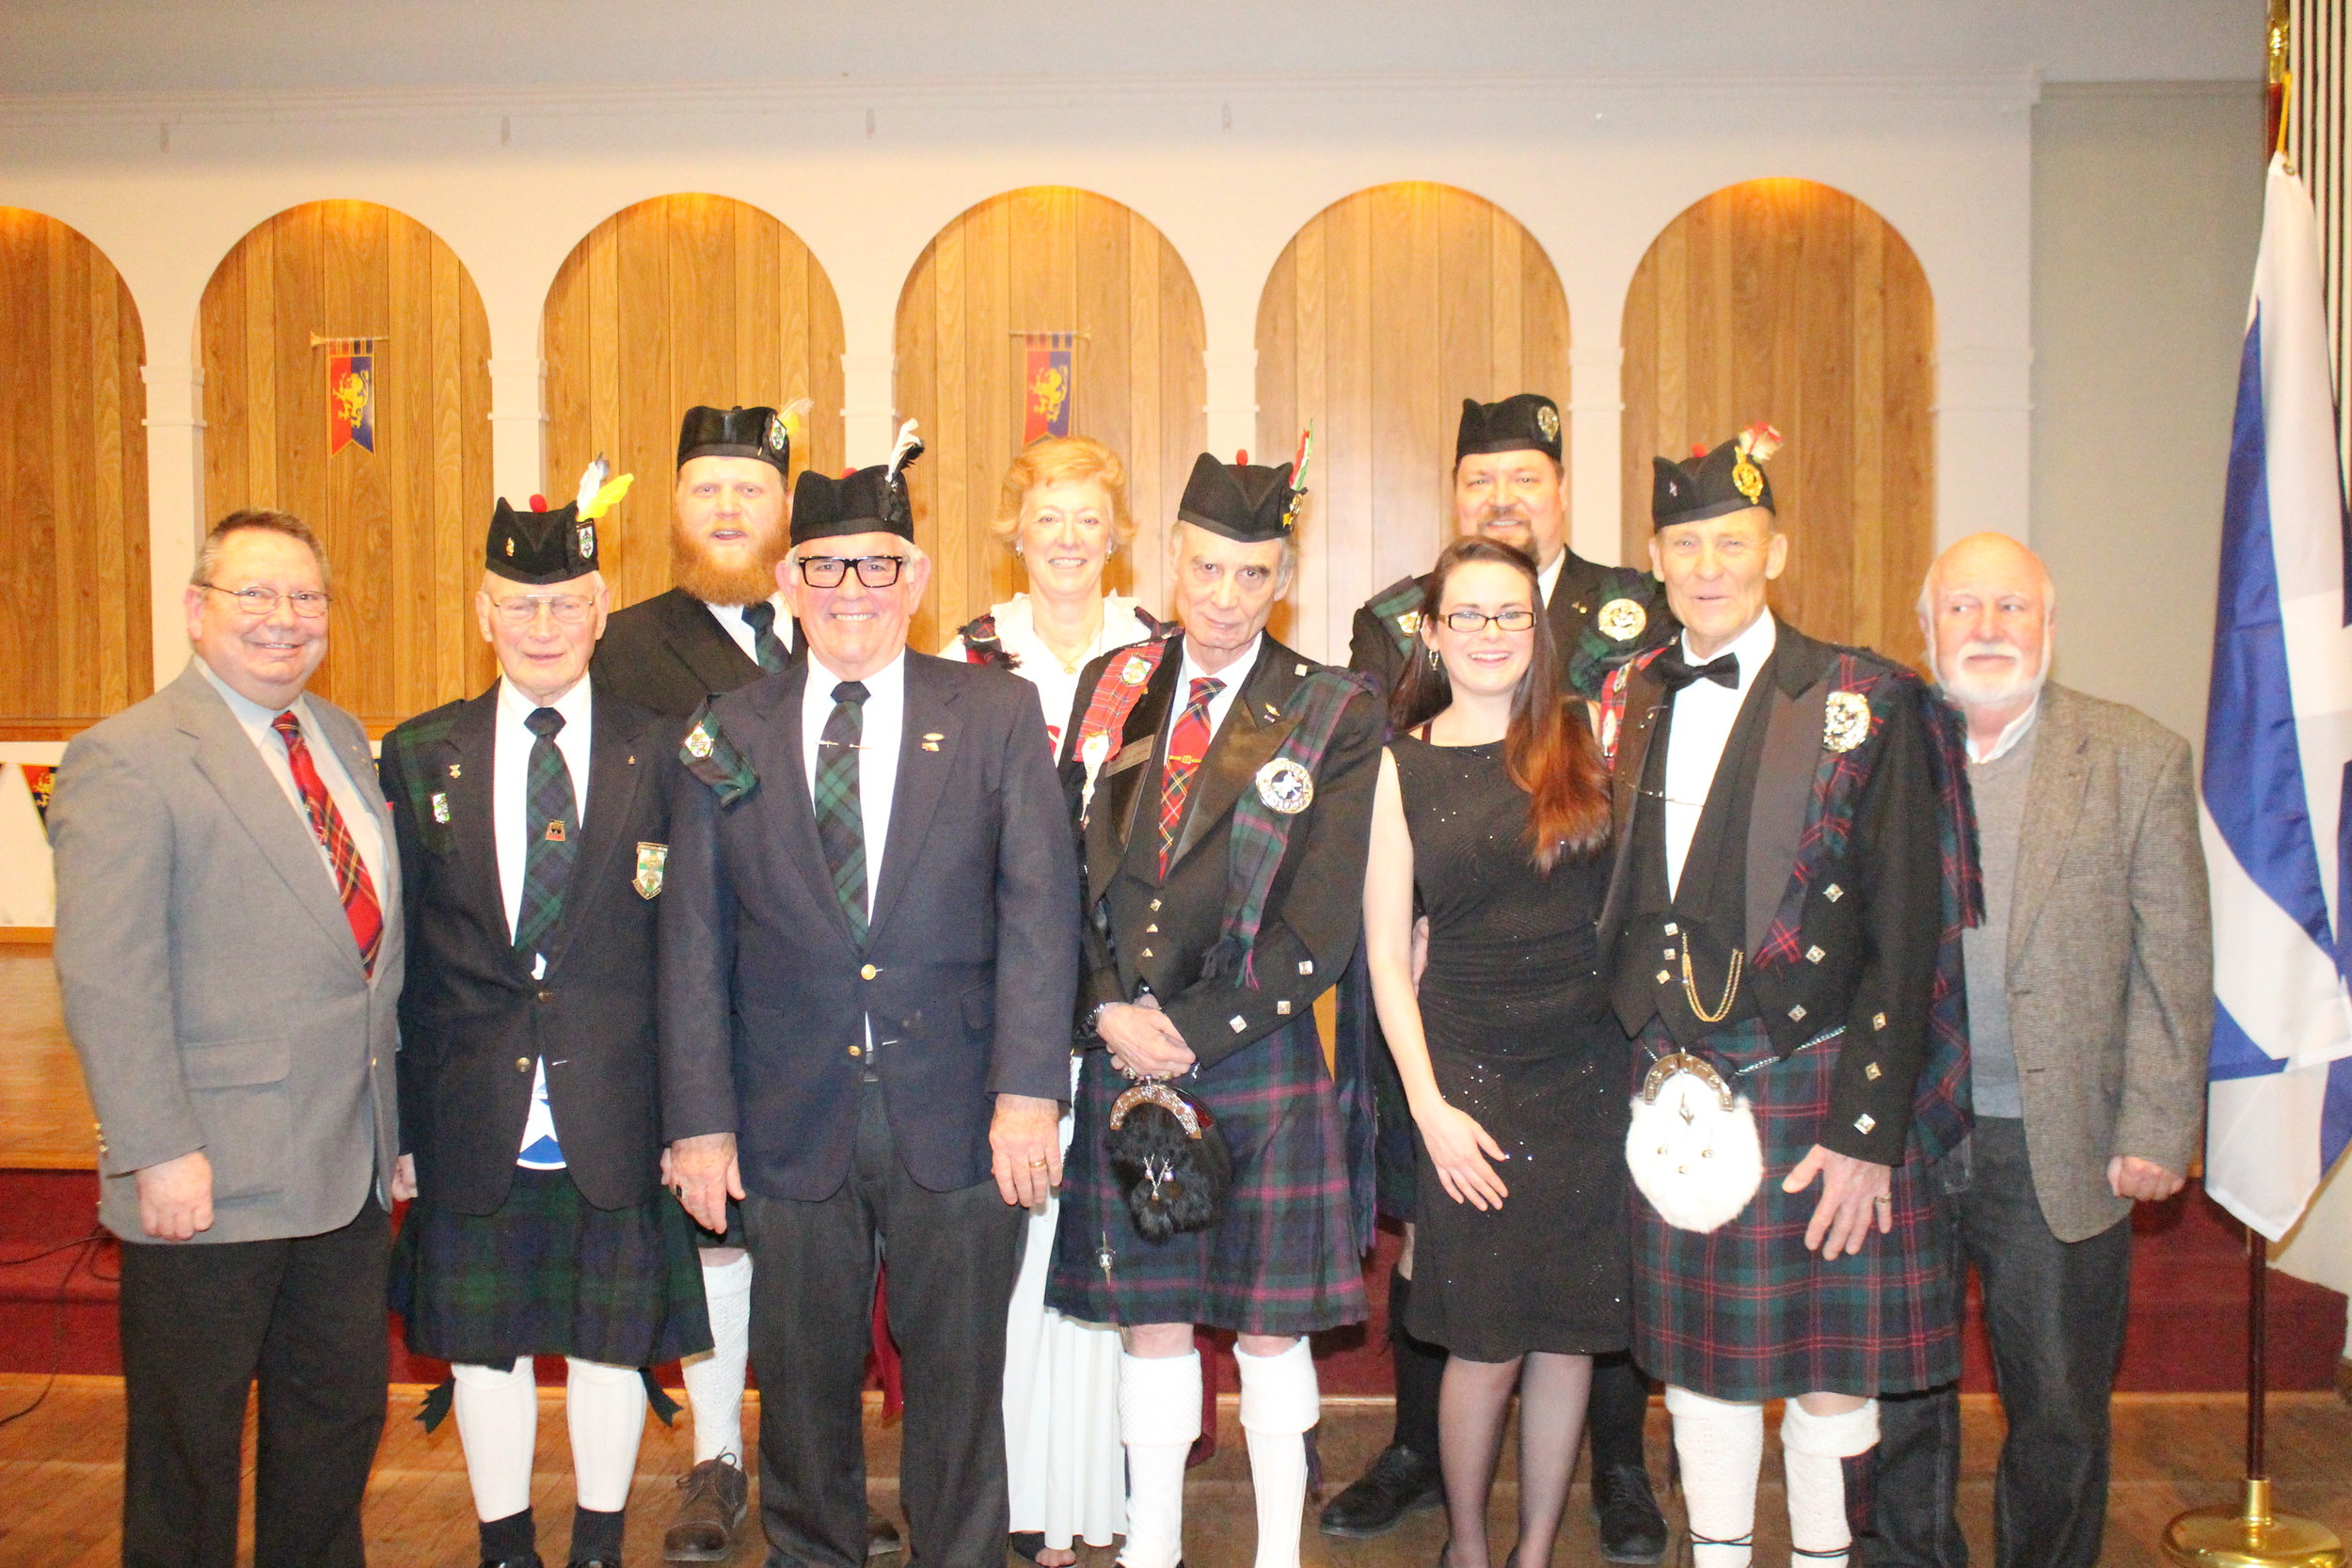 Lincoln Knights of St. Andrew at the 2016 Robert Burns Dinner